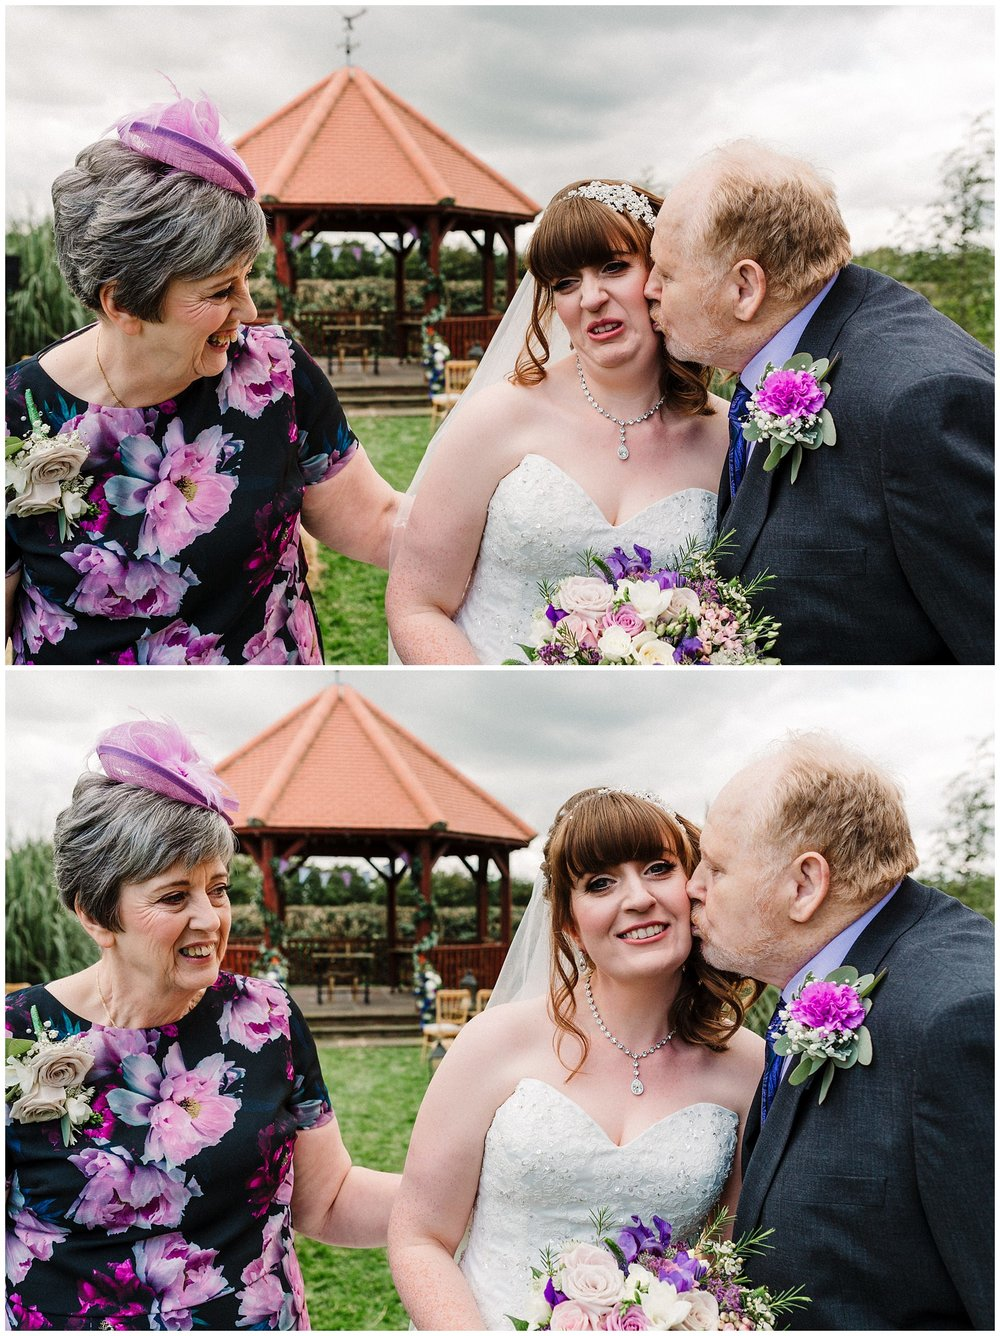 a bride pulling a funny face as her dad kisses her cheek